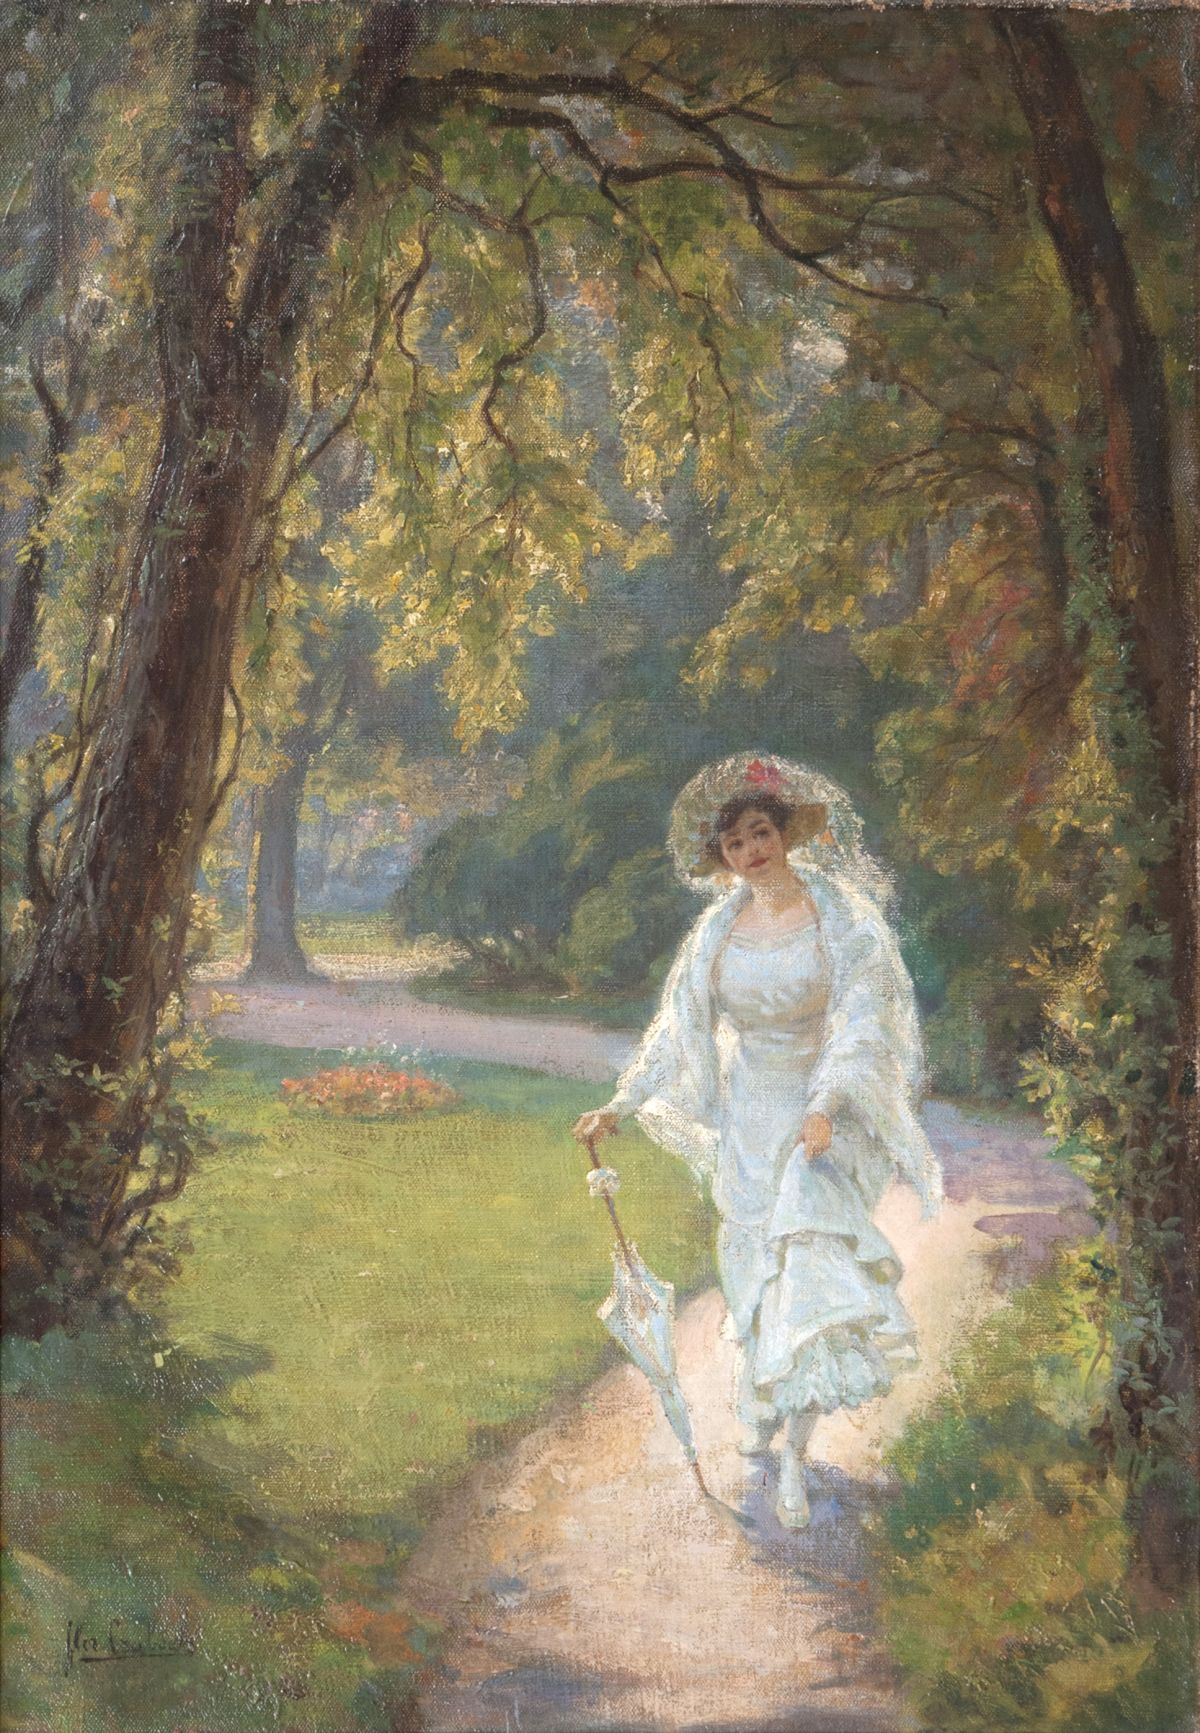 Lady in Park